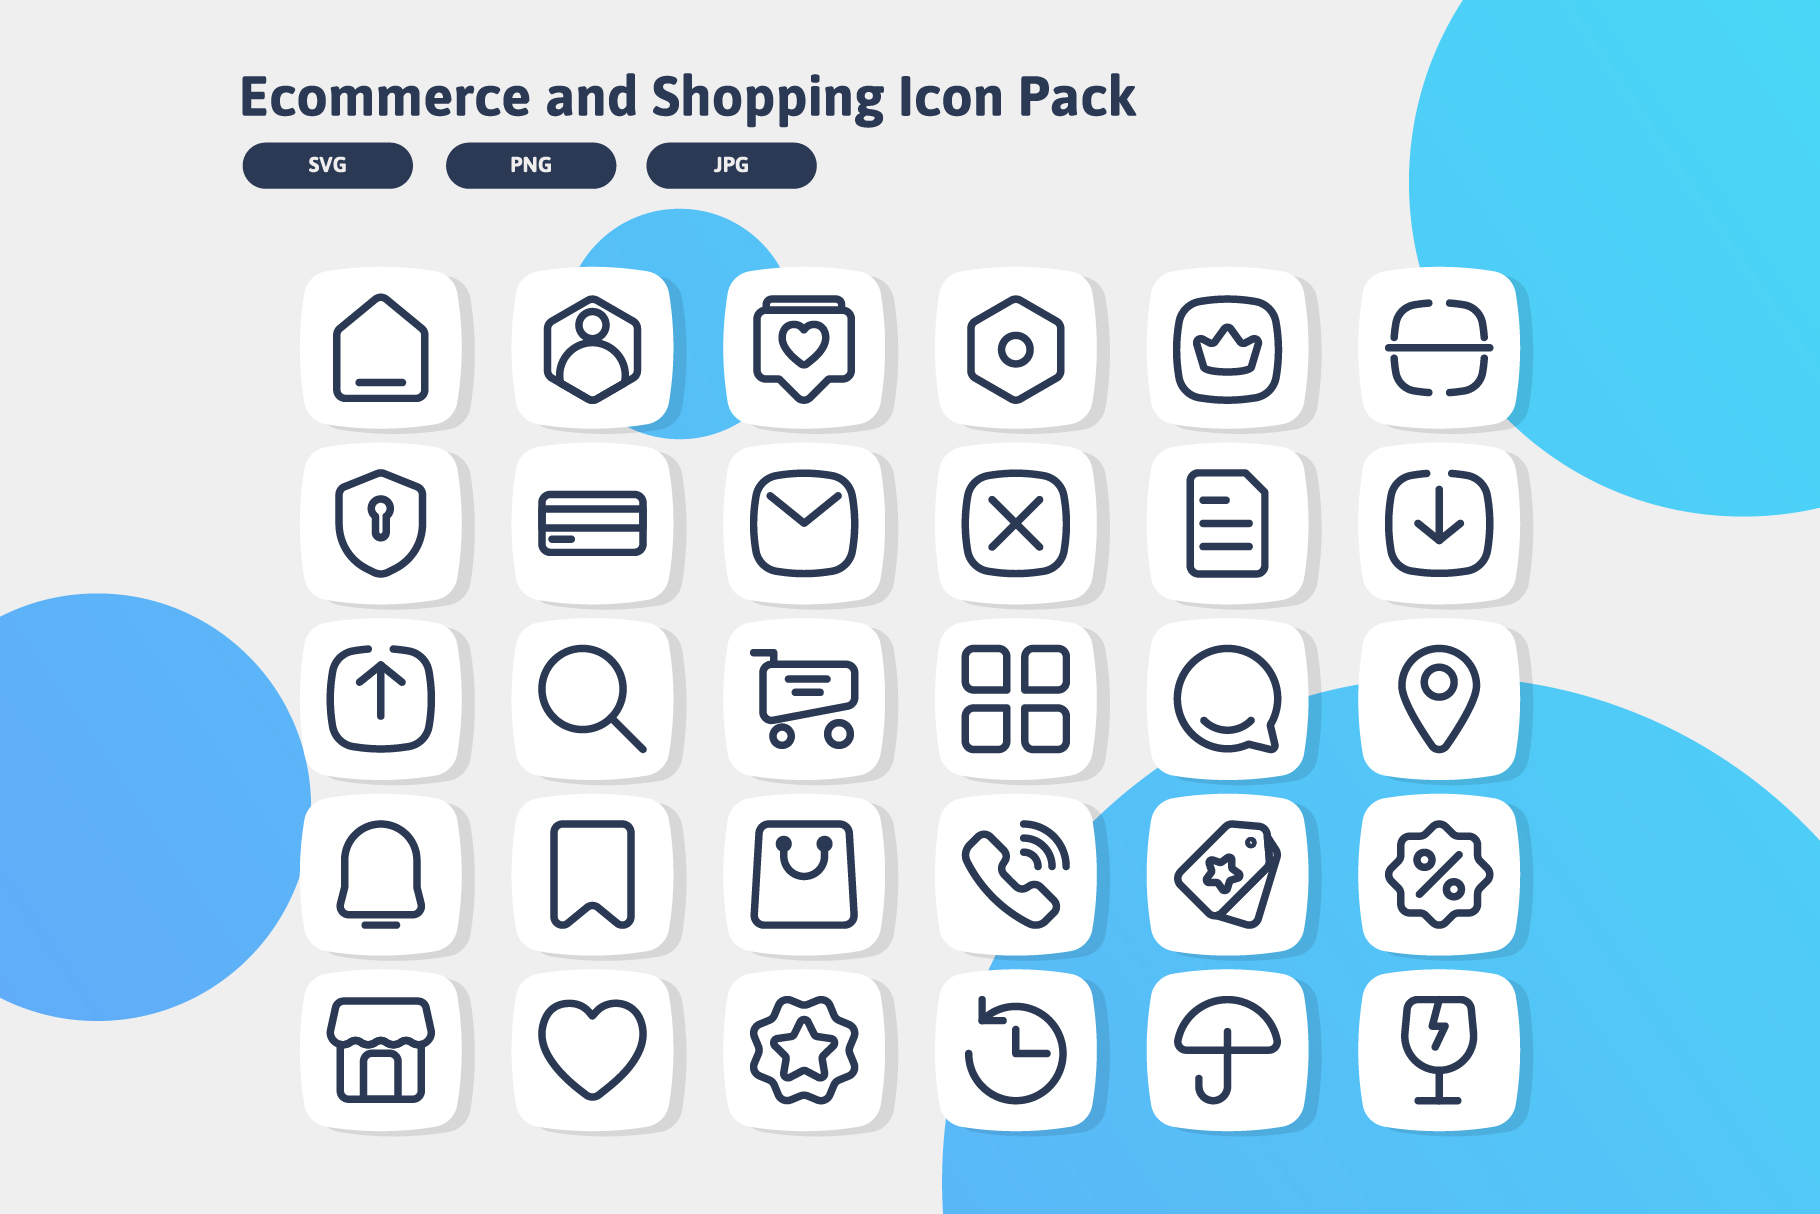 Download Free Web Ecommerce And Shopping Icon Pack Graphic By Bayu Febrianto for Cricut Explore, Silhouette and other cutting machines.